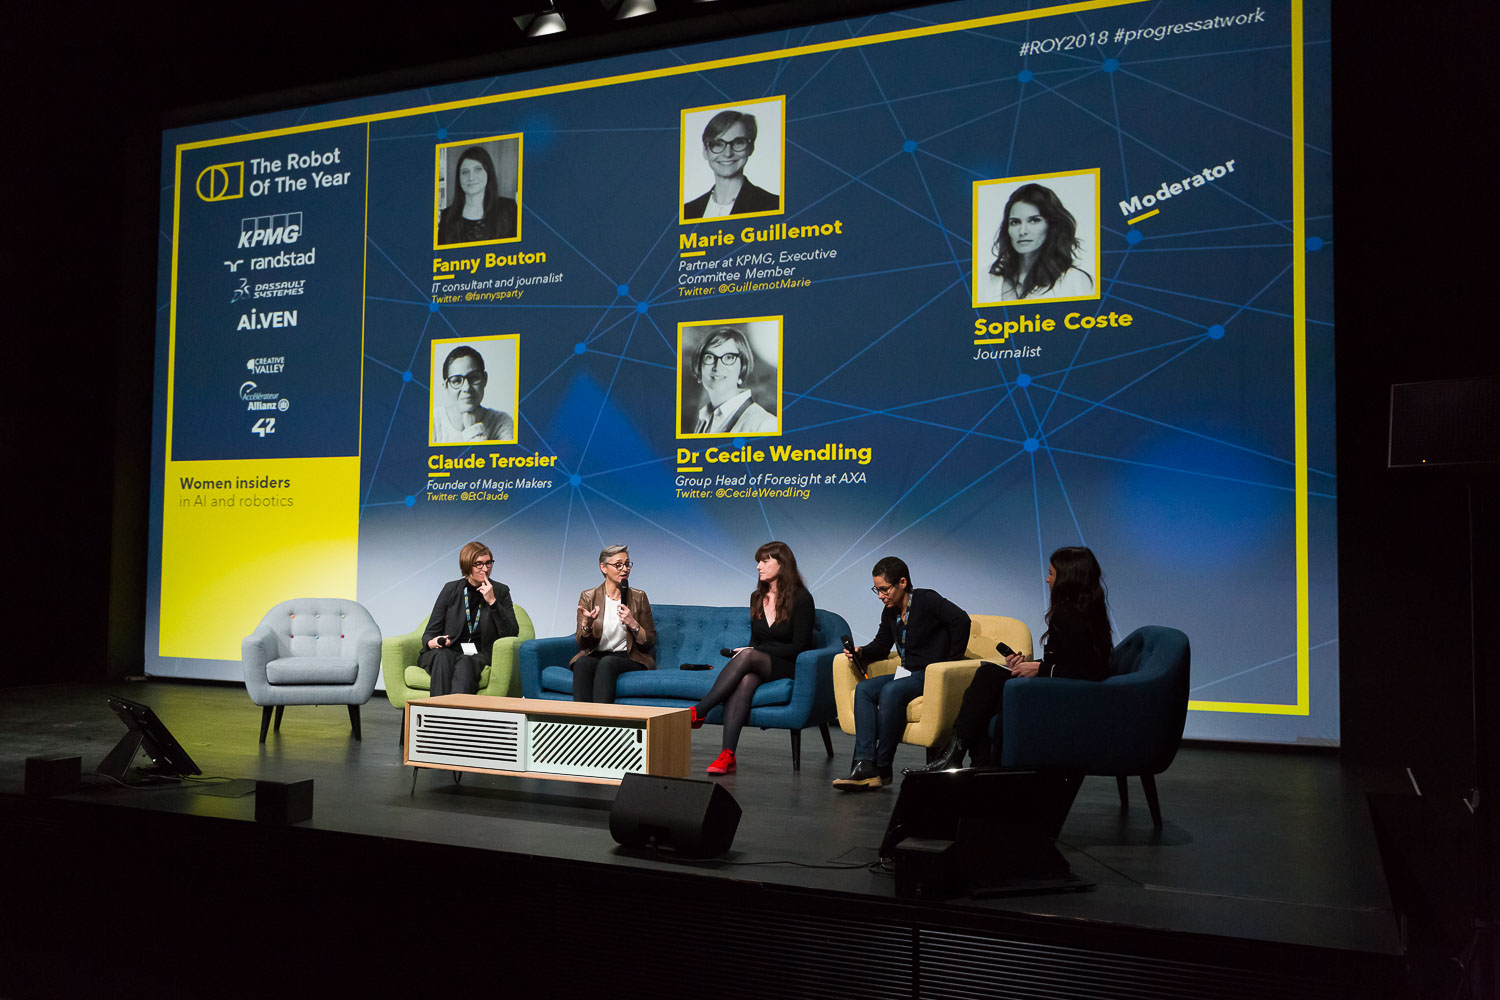 Women insiders in AI and robotics.  Dr CecileWendling- Group Head of Foresight at AXA, MarieGuillemot- Partner at KPMG, Executive Committee Member, FannyBouton- IT consultant and journalist, ClaudeTerosier- Founder of Magic Makers, Moderator : SophieCoste- Journalist.